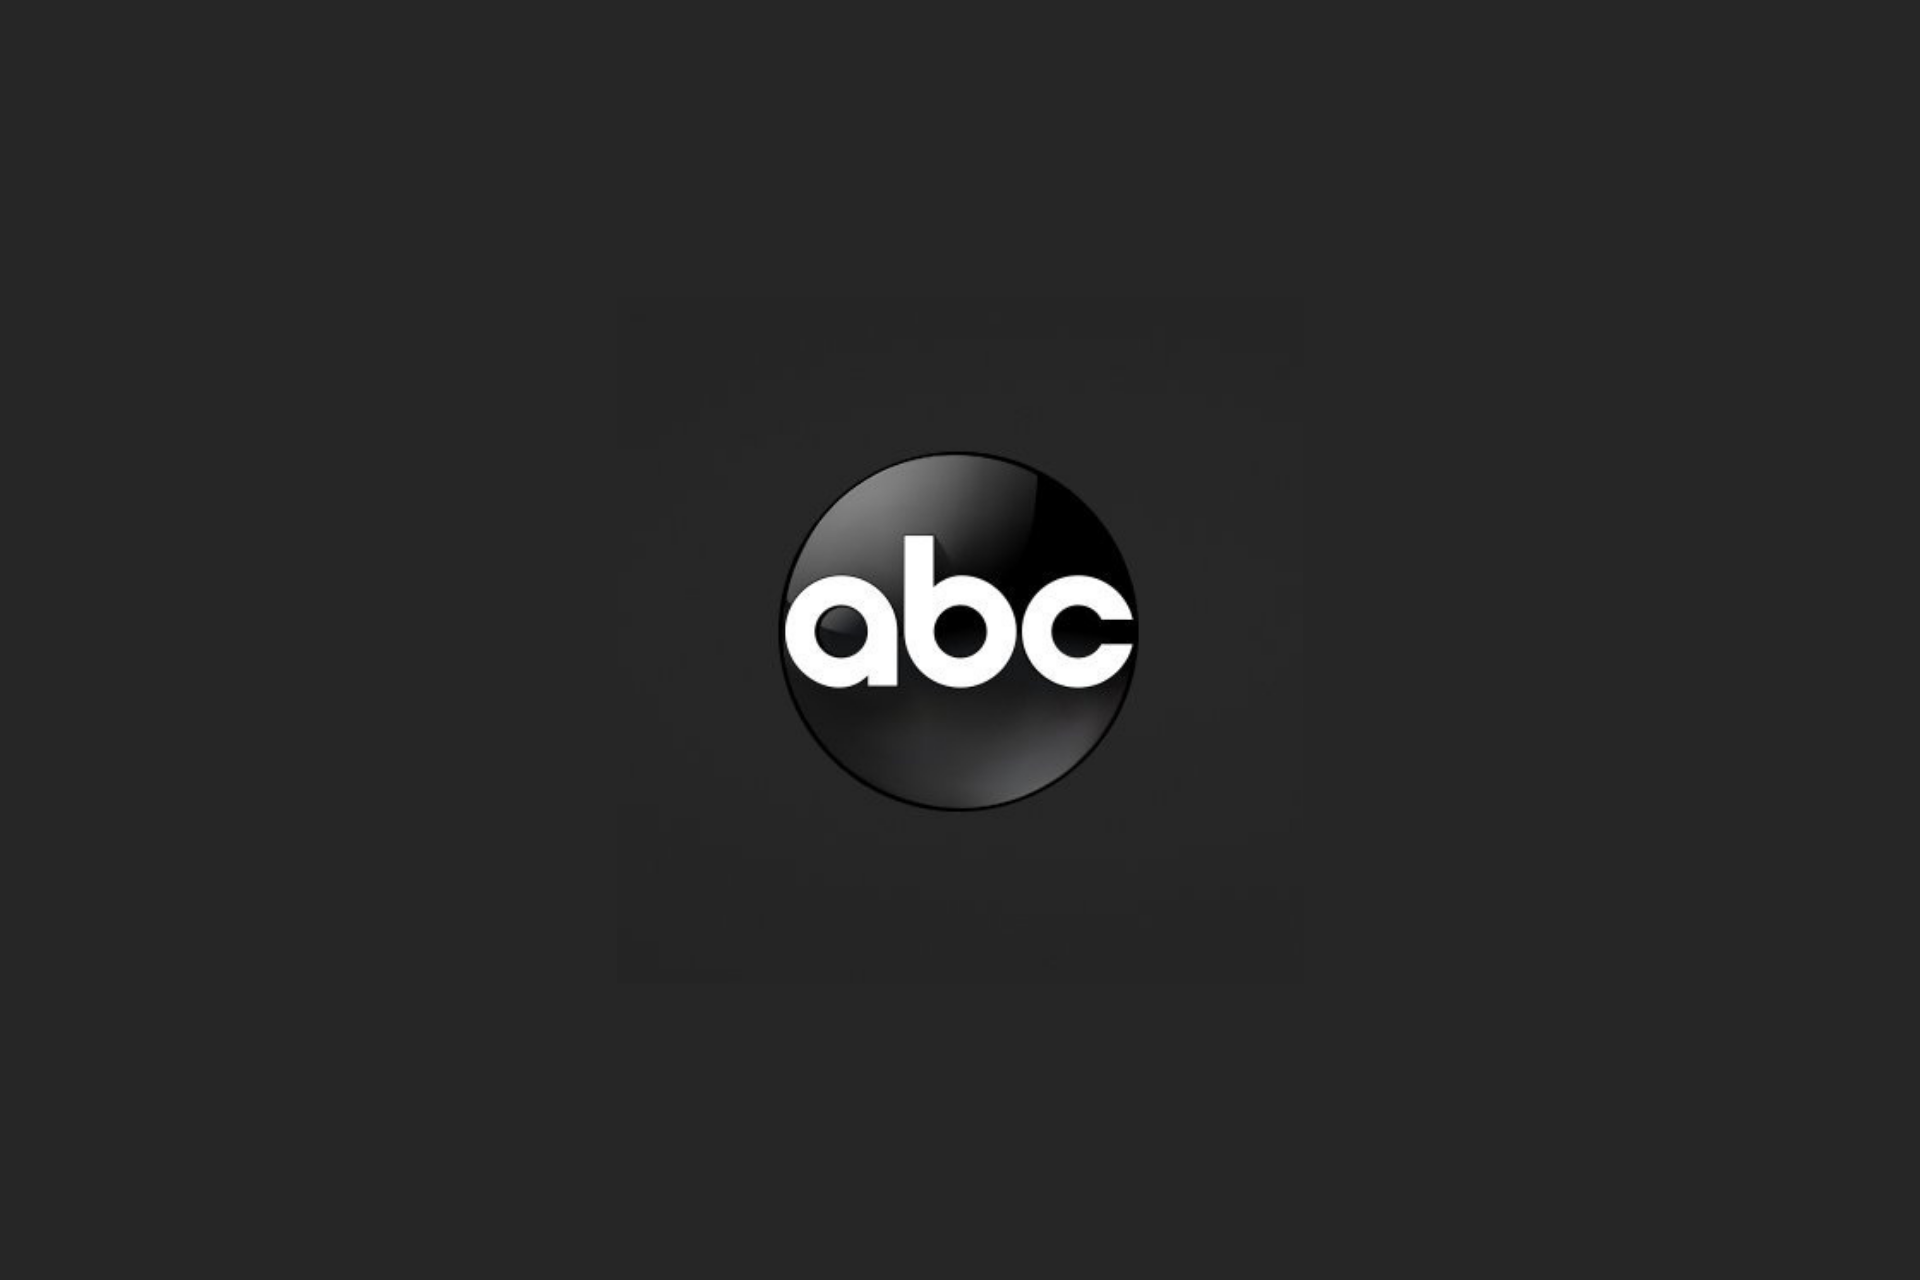 FIX Can't access abc site